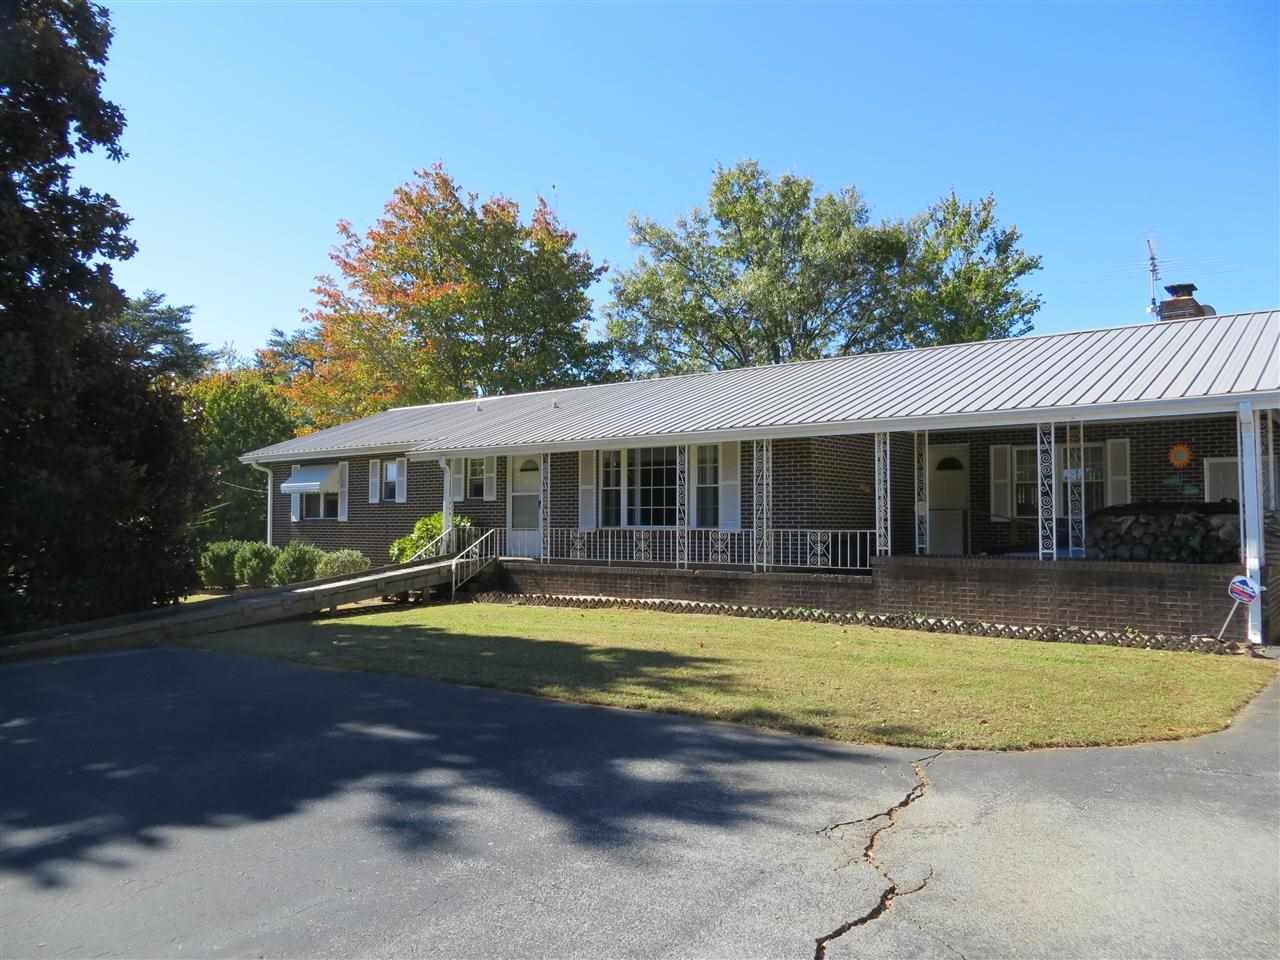 441 Woodall Mountain Rd, Pickens, SC 29671